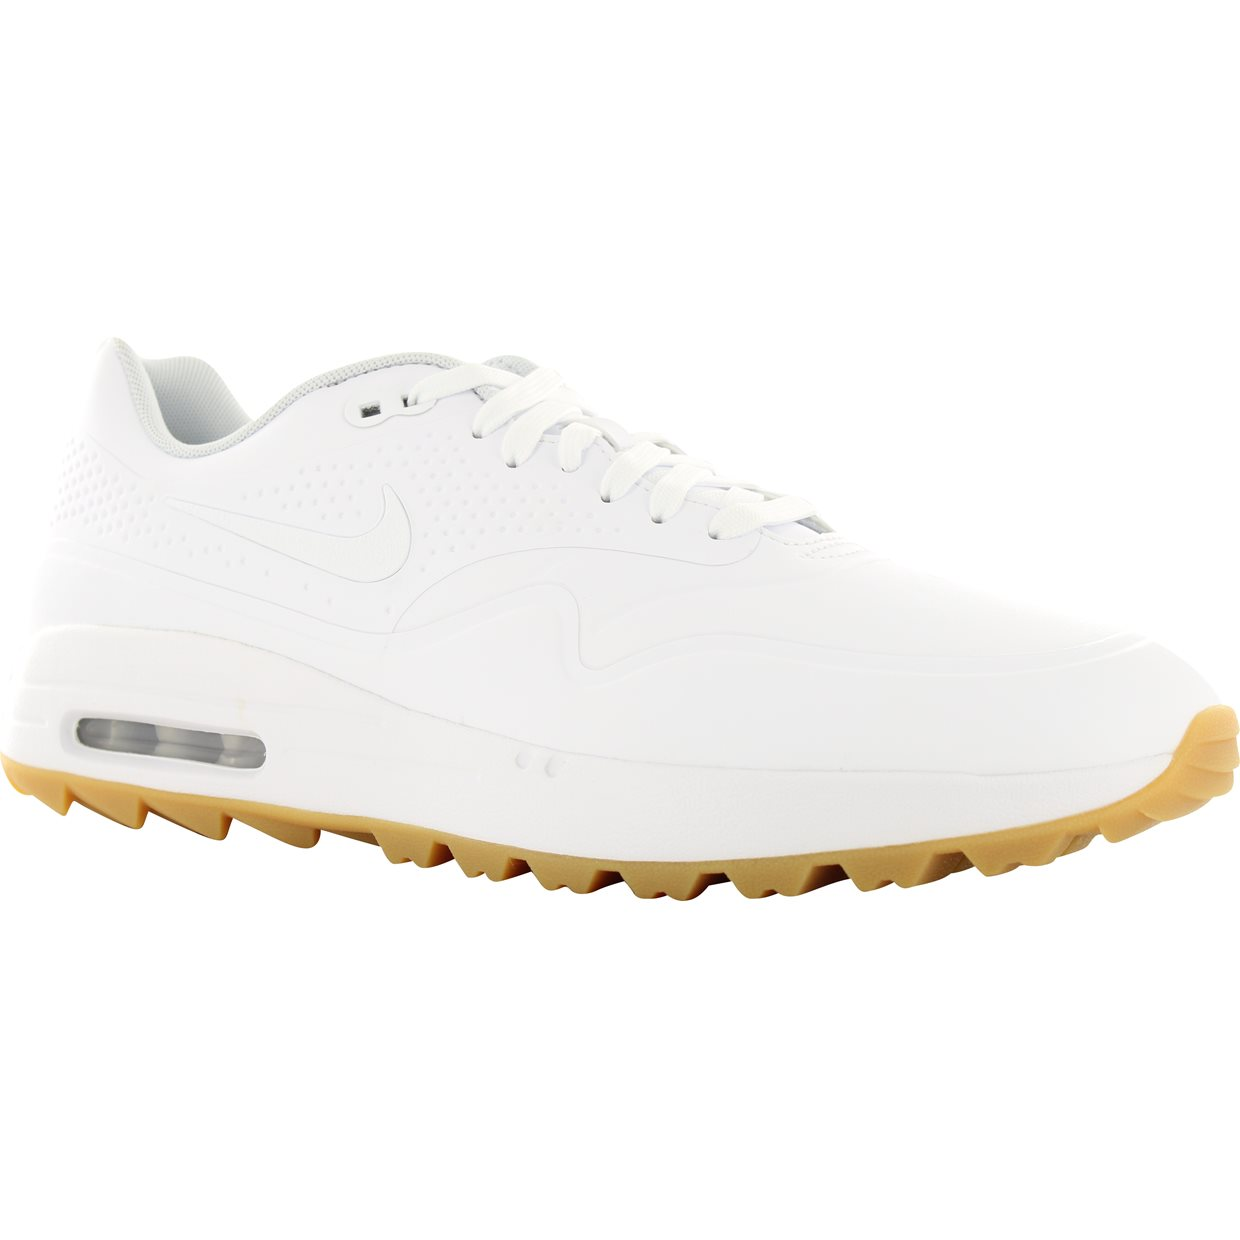 d5790b8420f3 Nike Air Max 1 G Spikeless Shoes at GlobalGolf.com